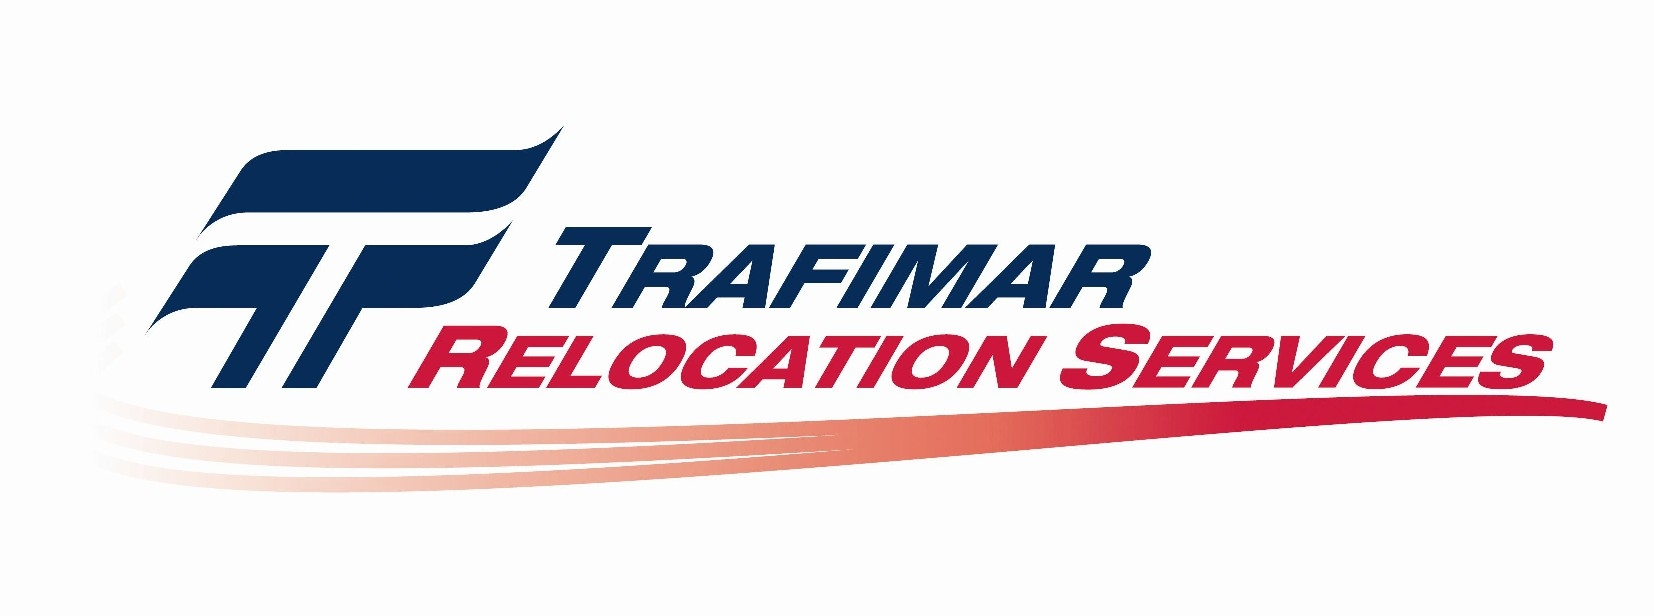 Trafimar Relocation Services, S.A. de C.V.